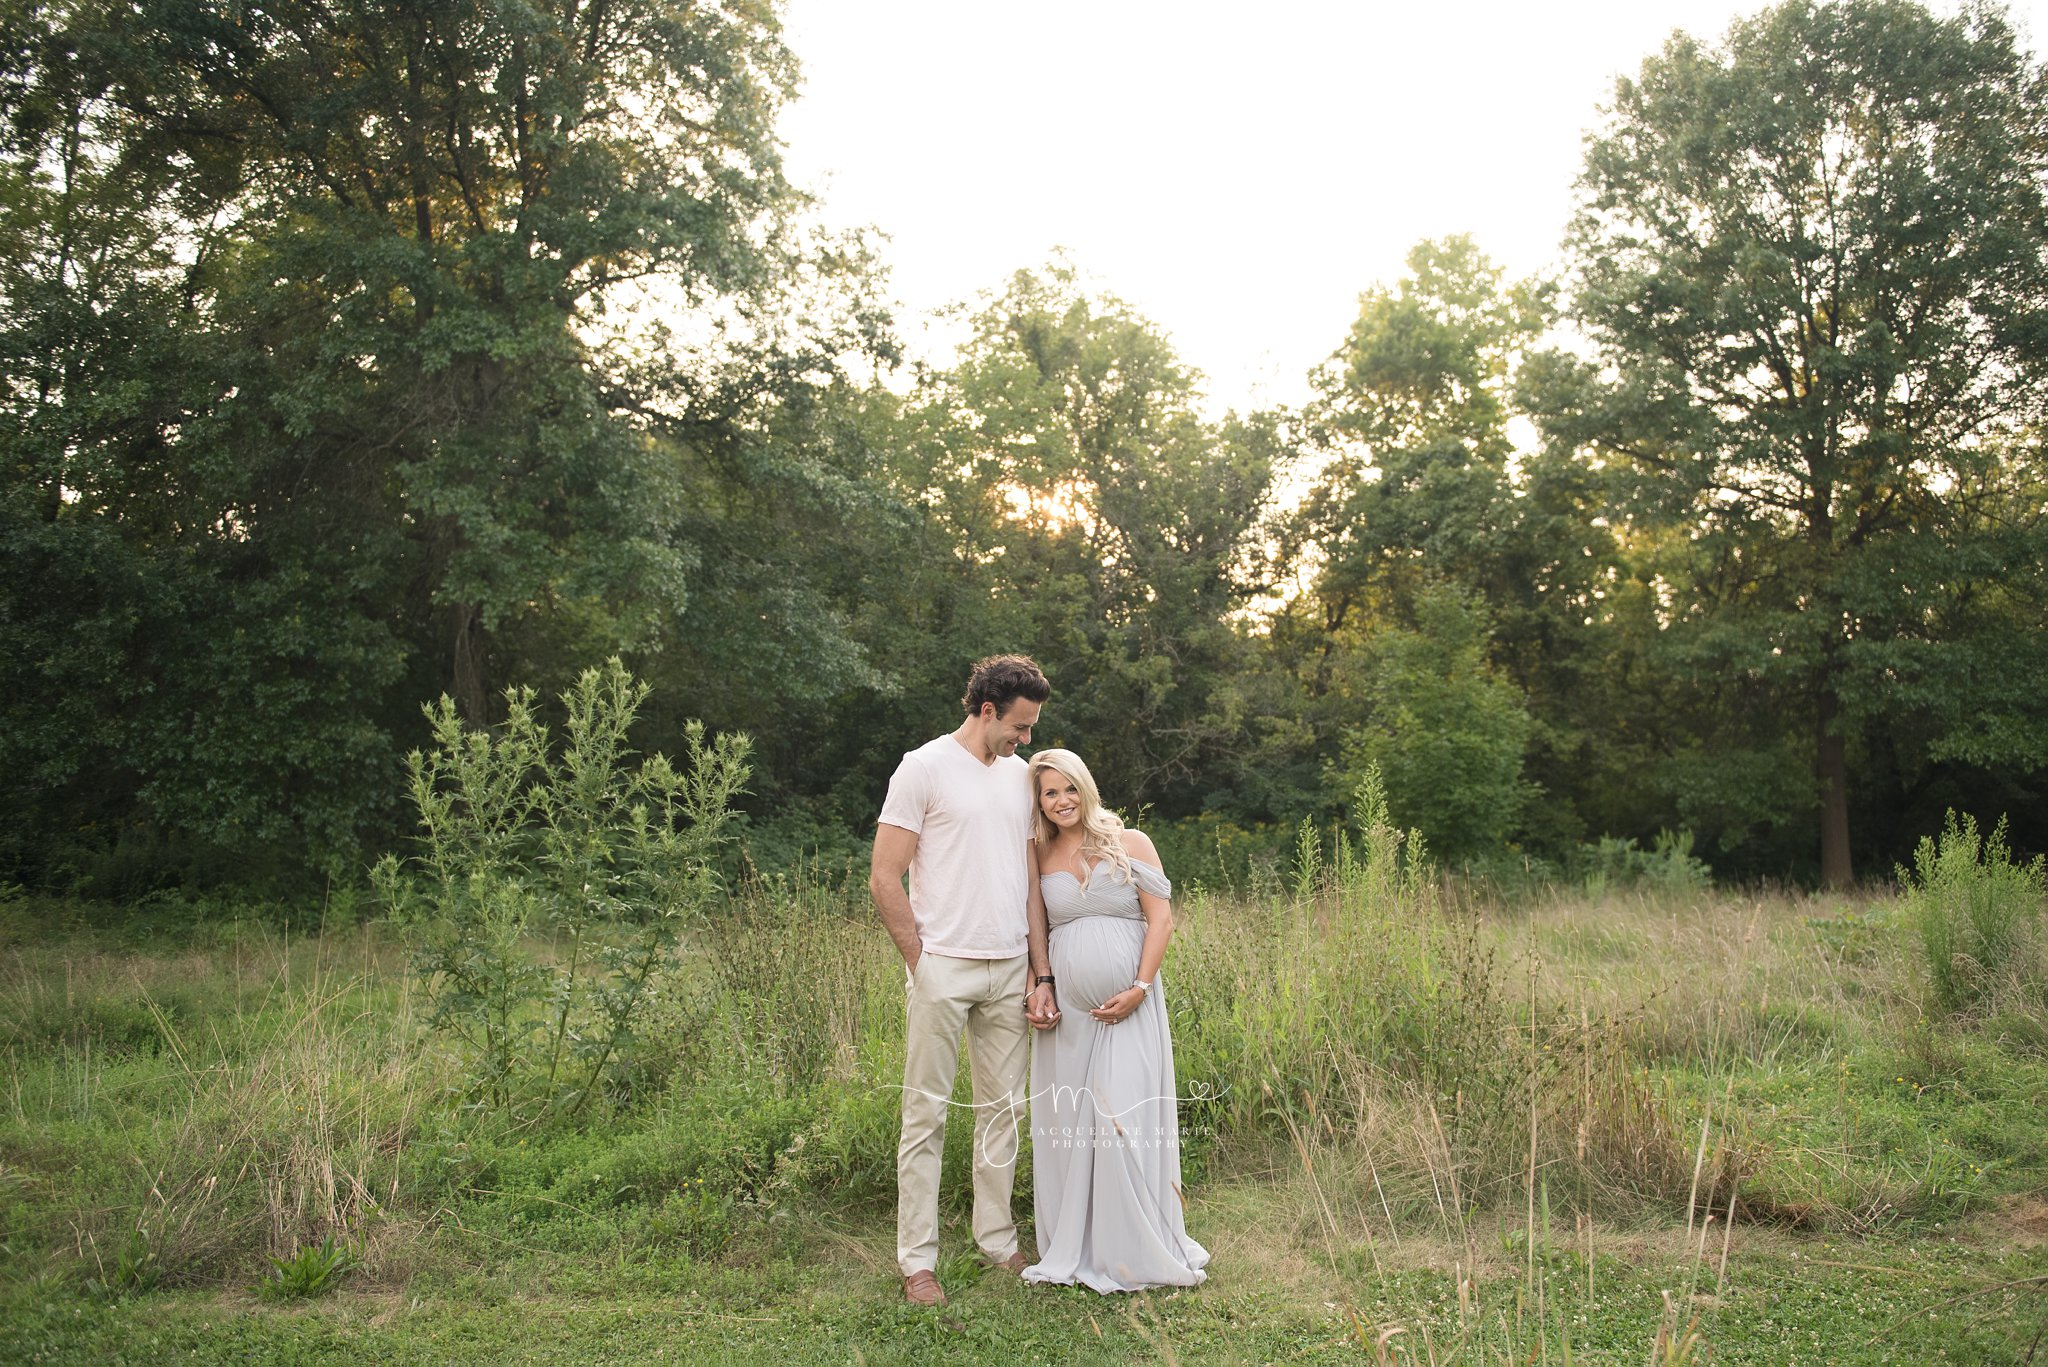 columbus ohio maternity photographer photographs couple expecting their first baby at sunset